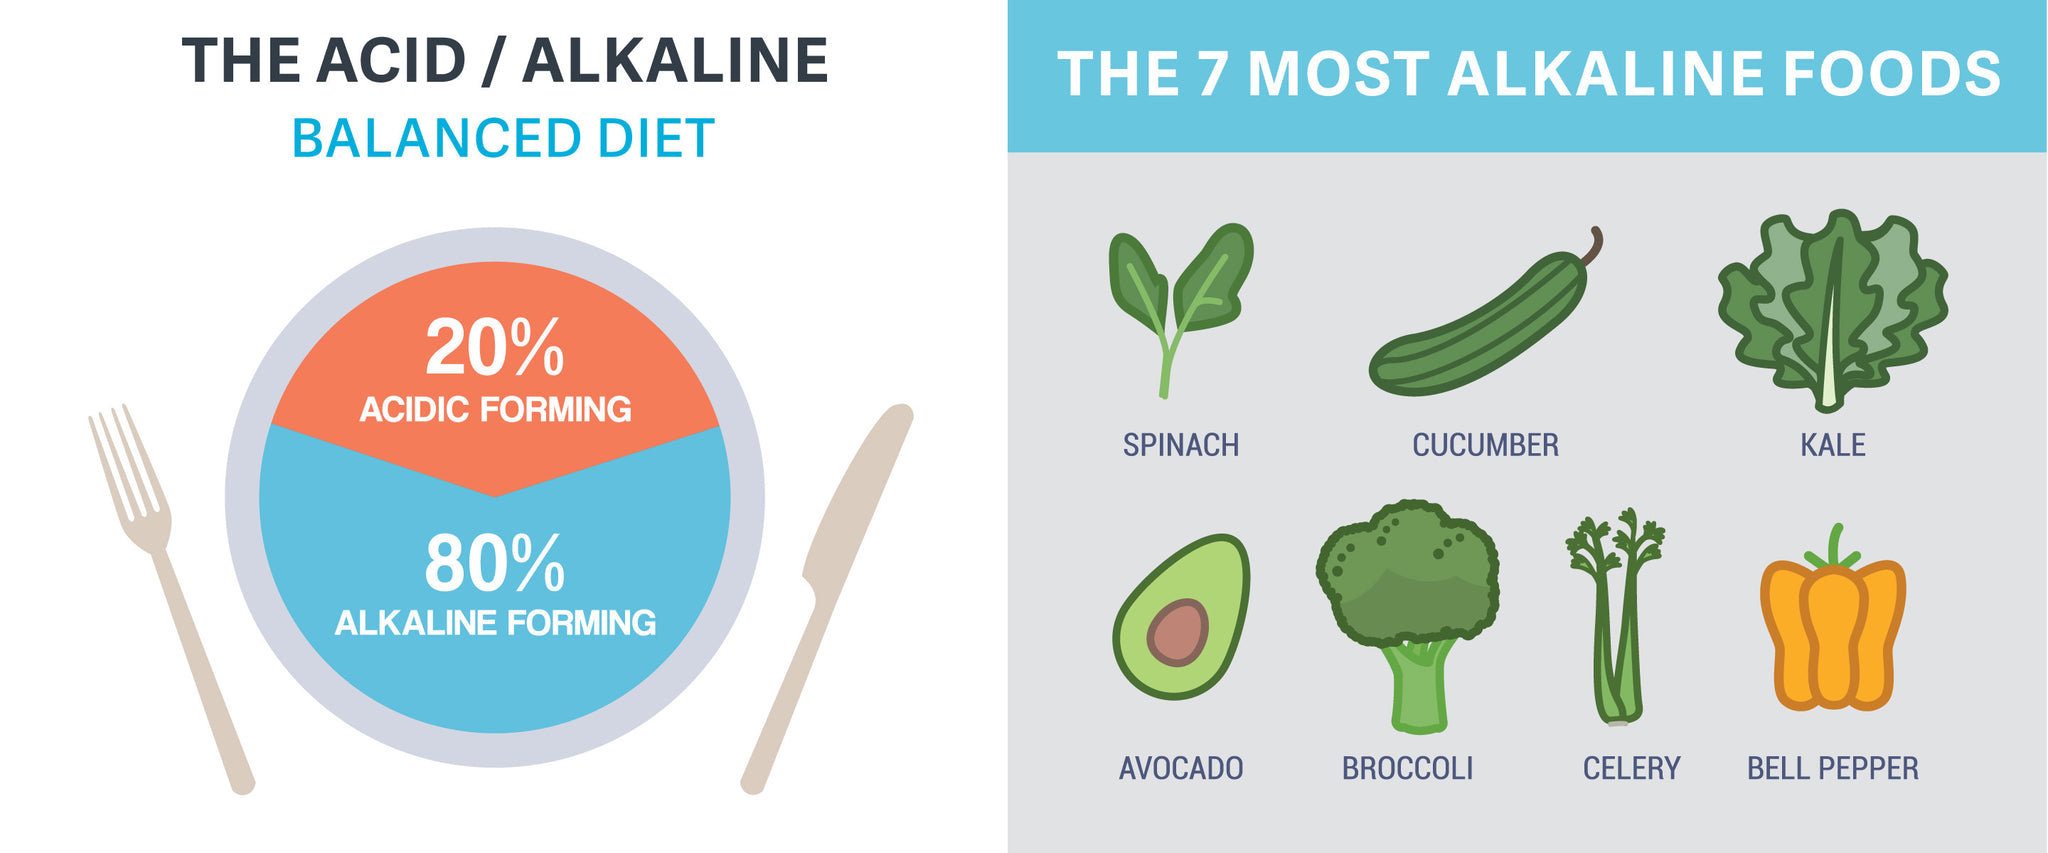 How to Eat an Alkaline Diet